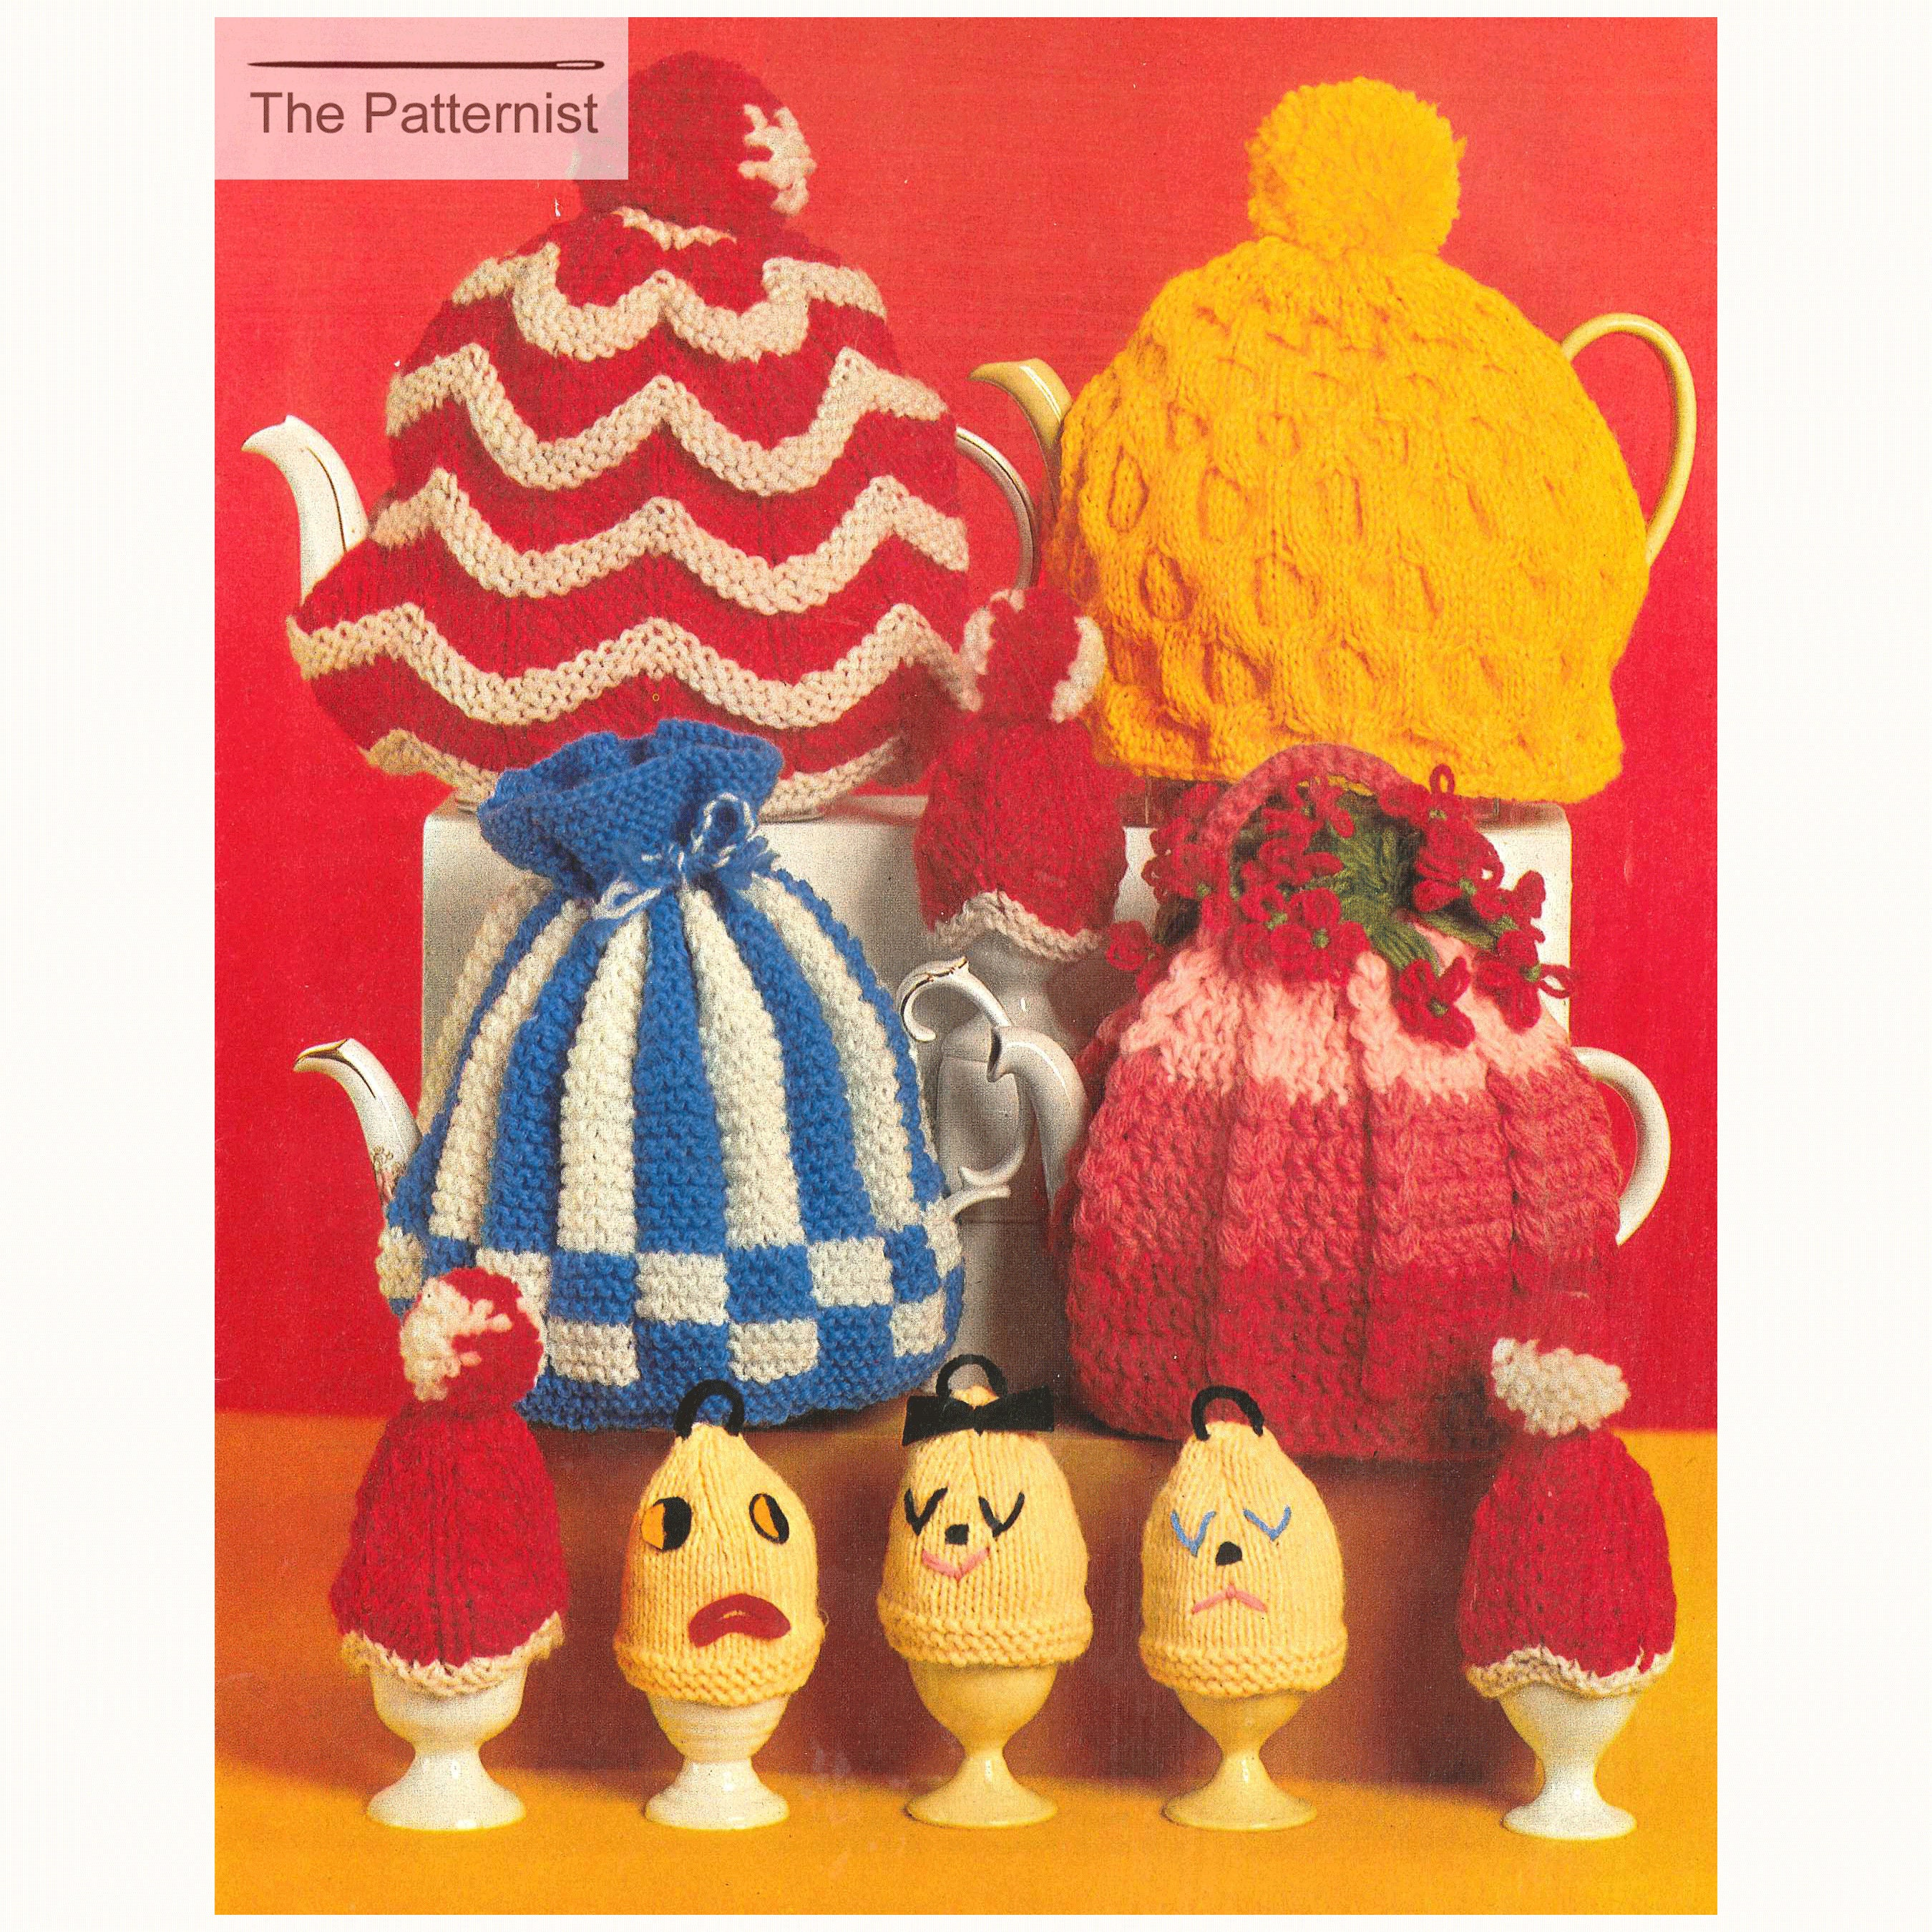 Knitting Pattern And Crochet Pattern For Tea Cosies And Egg Etsy